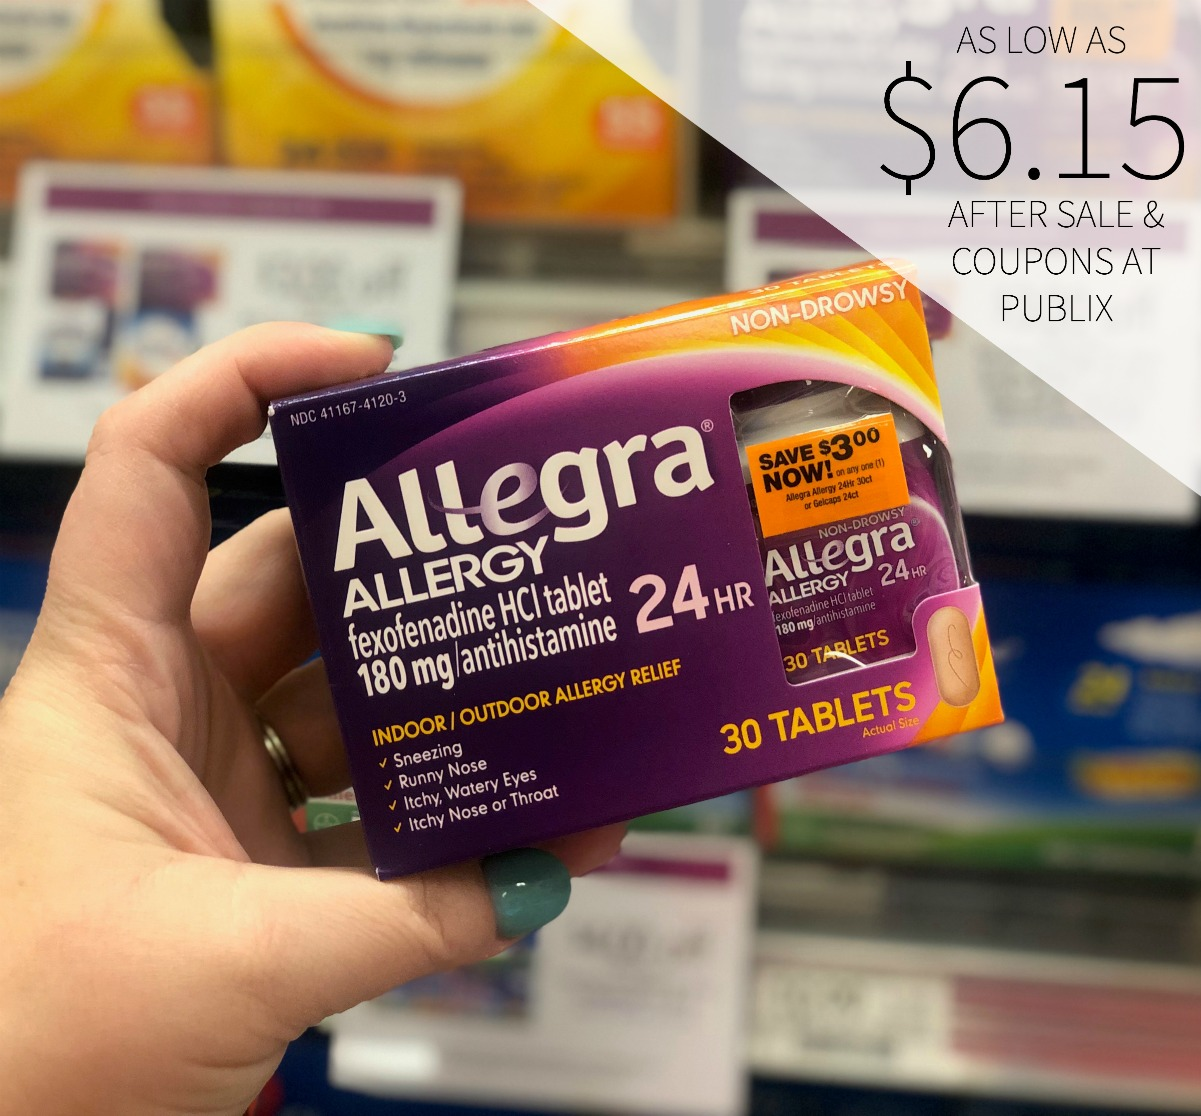 image regarding Allegra D Coupons Printable identified as Allegra Allergy Meds As Small As $6.15 At Publix (Preserve $12)